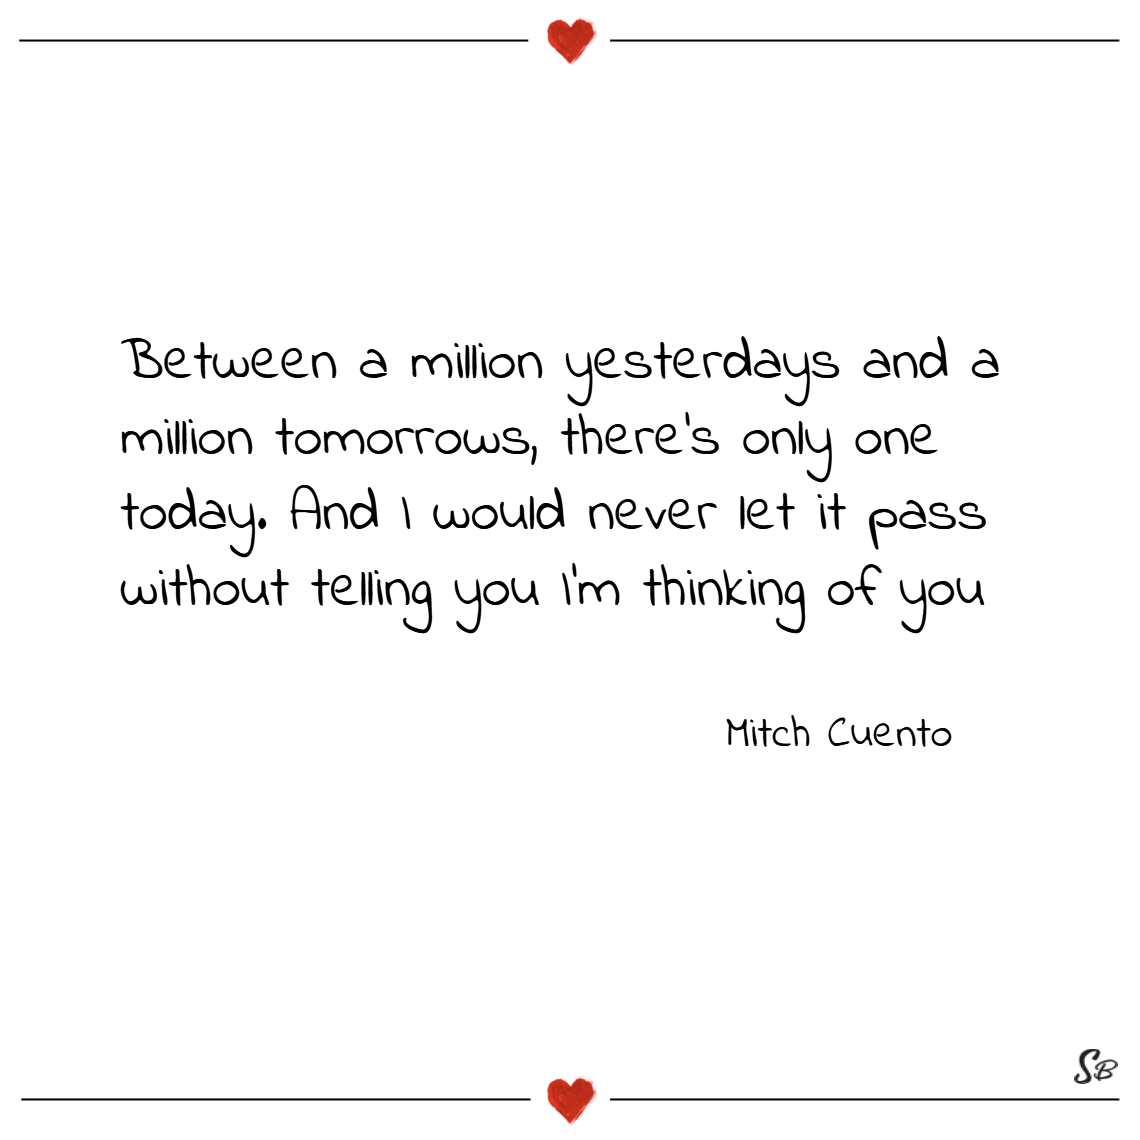 Between a million yesterdays and a million tomorrows, there's only one today. and i would never let it pass without telling you i'm thinking of you. – mitch cuento